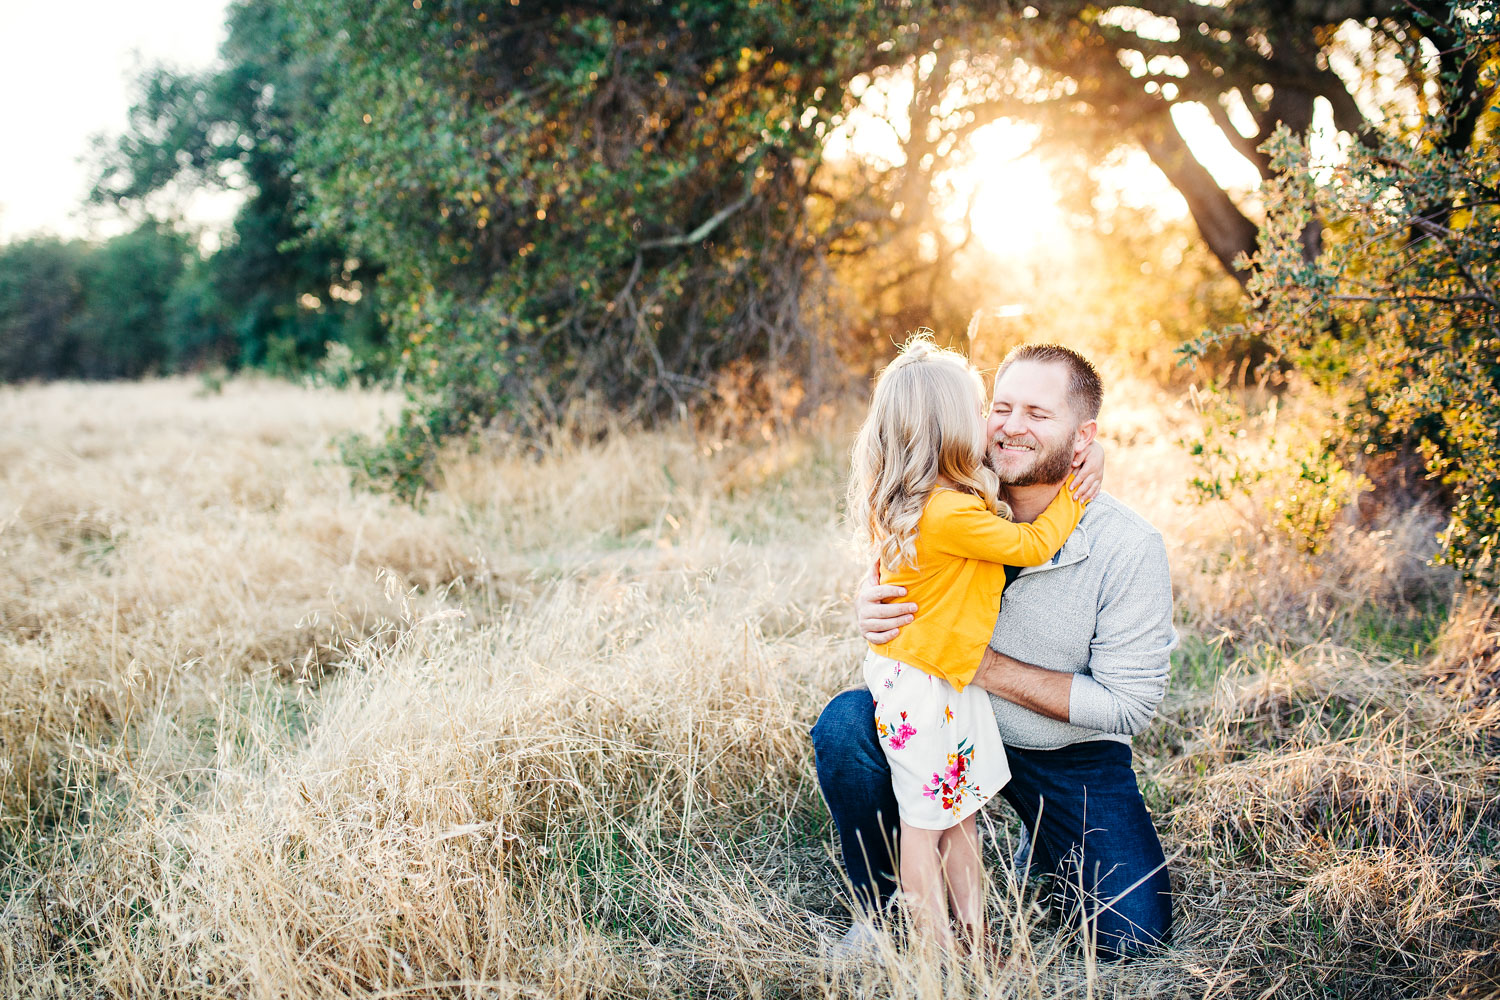 A dad and his daughter hug and have fun together while getting their family pictures taken in Roseville, California by their photographer, Amy Wright.